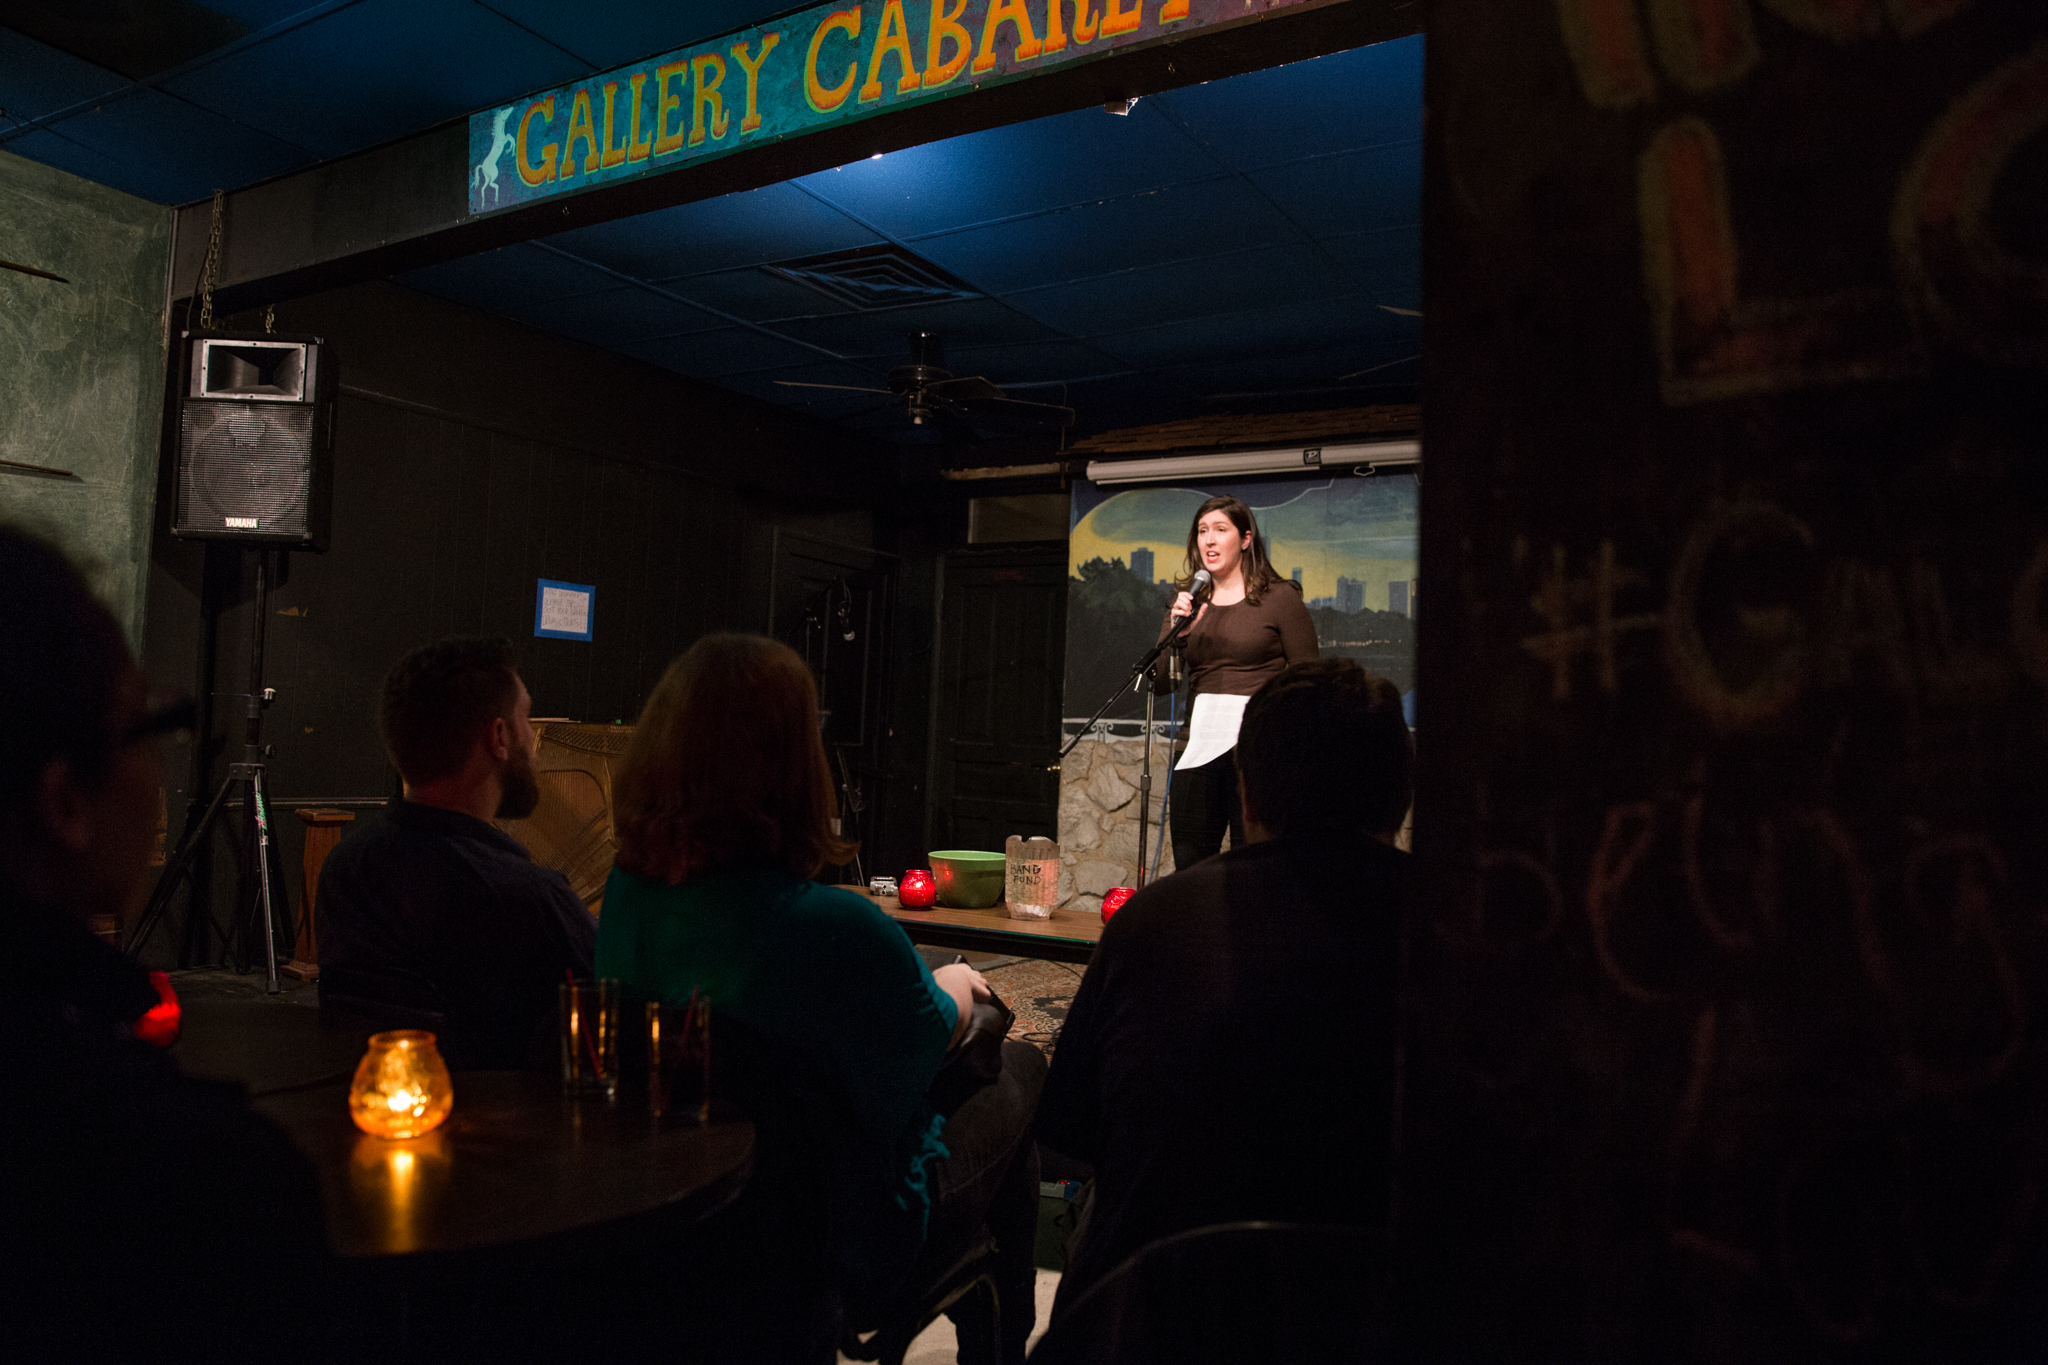 """Image: Photo of [ReaderFirstName ReaderLastName] performing at Miss Spoken at the Gallery Cabaret. The reader stands on-stage, speaking into the microphone and looking out at the audience. One of [ReaderLastName]'s hands grips the microphone and the other holds loose papers. [ReaderLastName] wears a dark shirt and dark pants. The reader appears small near the center of the frame. Painted on the stage wall behind the reader is a scene showing Chicago's skyline, as if viewed from behind a stone wall. In the foreground, the words """"Gallery Cabaret"""" are partially visible at the top of the frame and the backs and sides of some audience members' heads are visible at the bottom; some letters and a hashtag are slightly visible on a foreground wall. Photo by [Photographer]. Courtesy of Miss Spoken."""